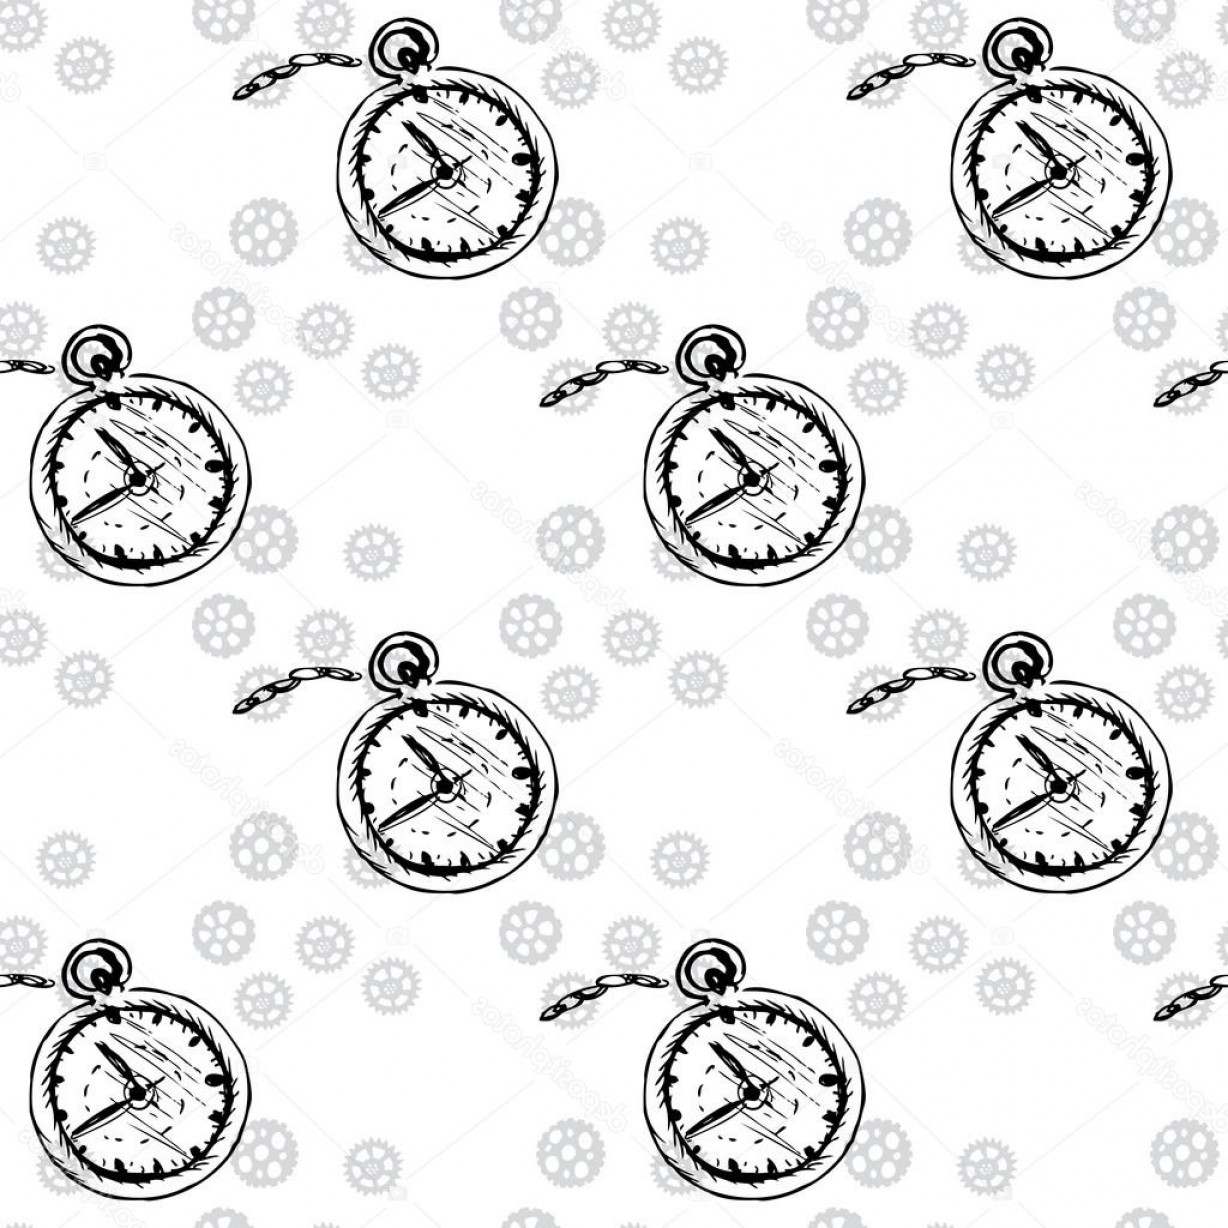 Watch Gears Vector: Stock Illustration Clocks Seamless Pattern With Pocket